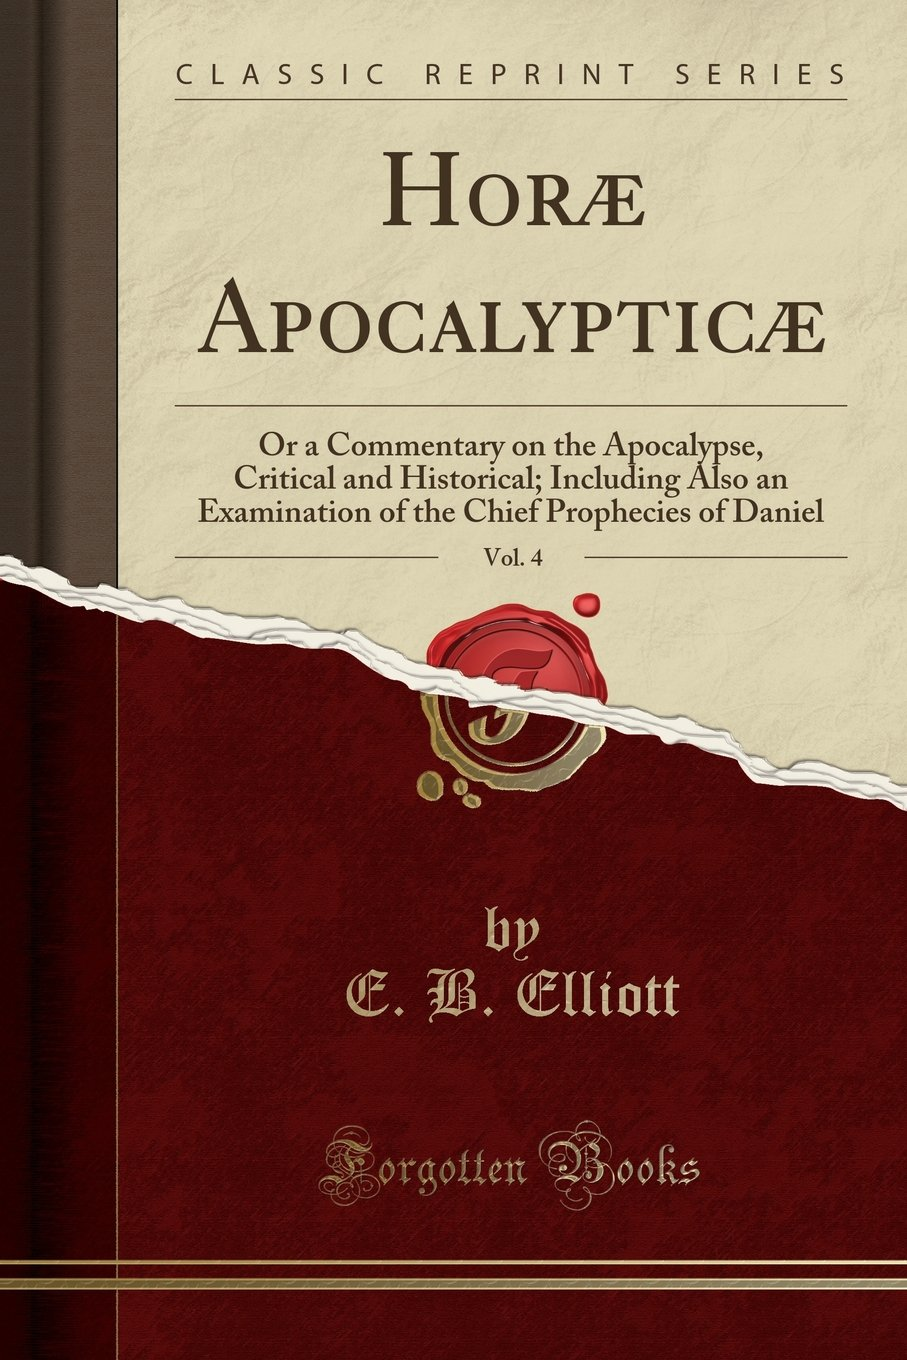 Read Online Horæ Apocalypticæ, or a Commentary on the Apocalypse, Critical and Historical, Vol. 4: Including Also an Examination of the Chief Prophecies of Daniel (Classic Reprint) ebook